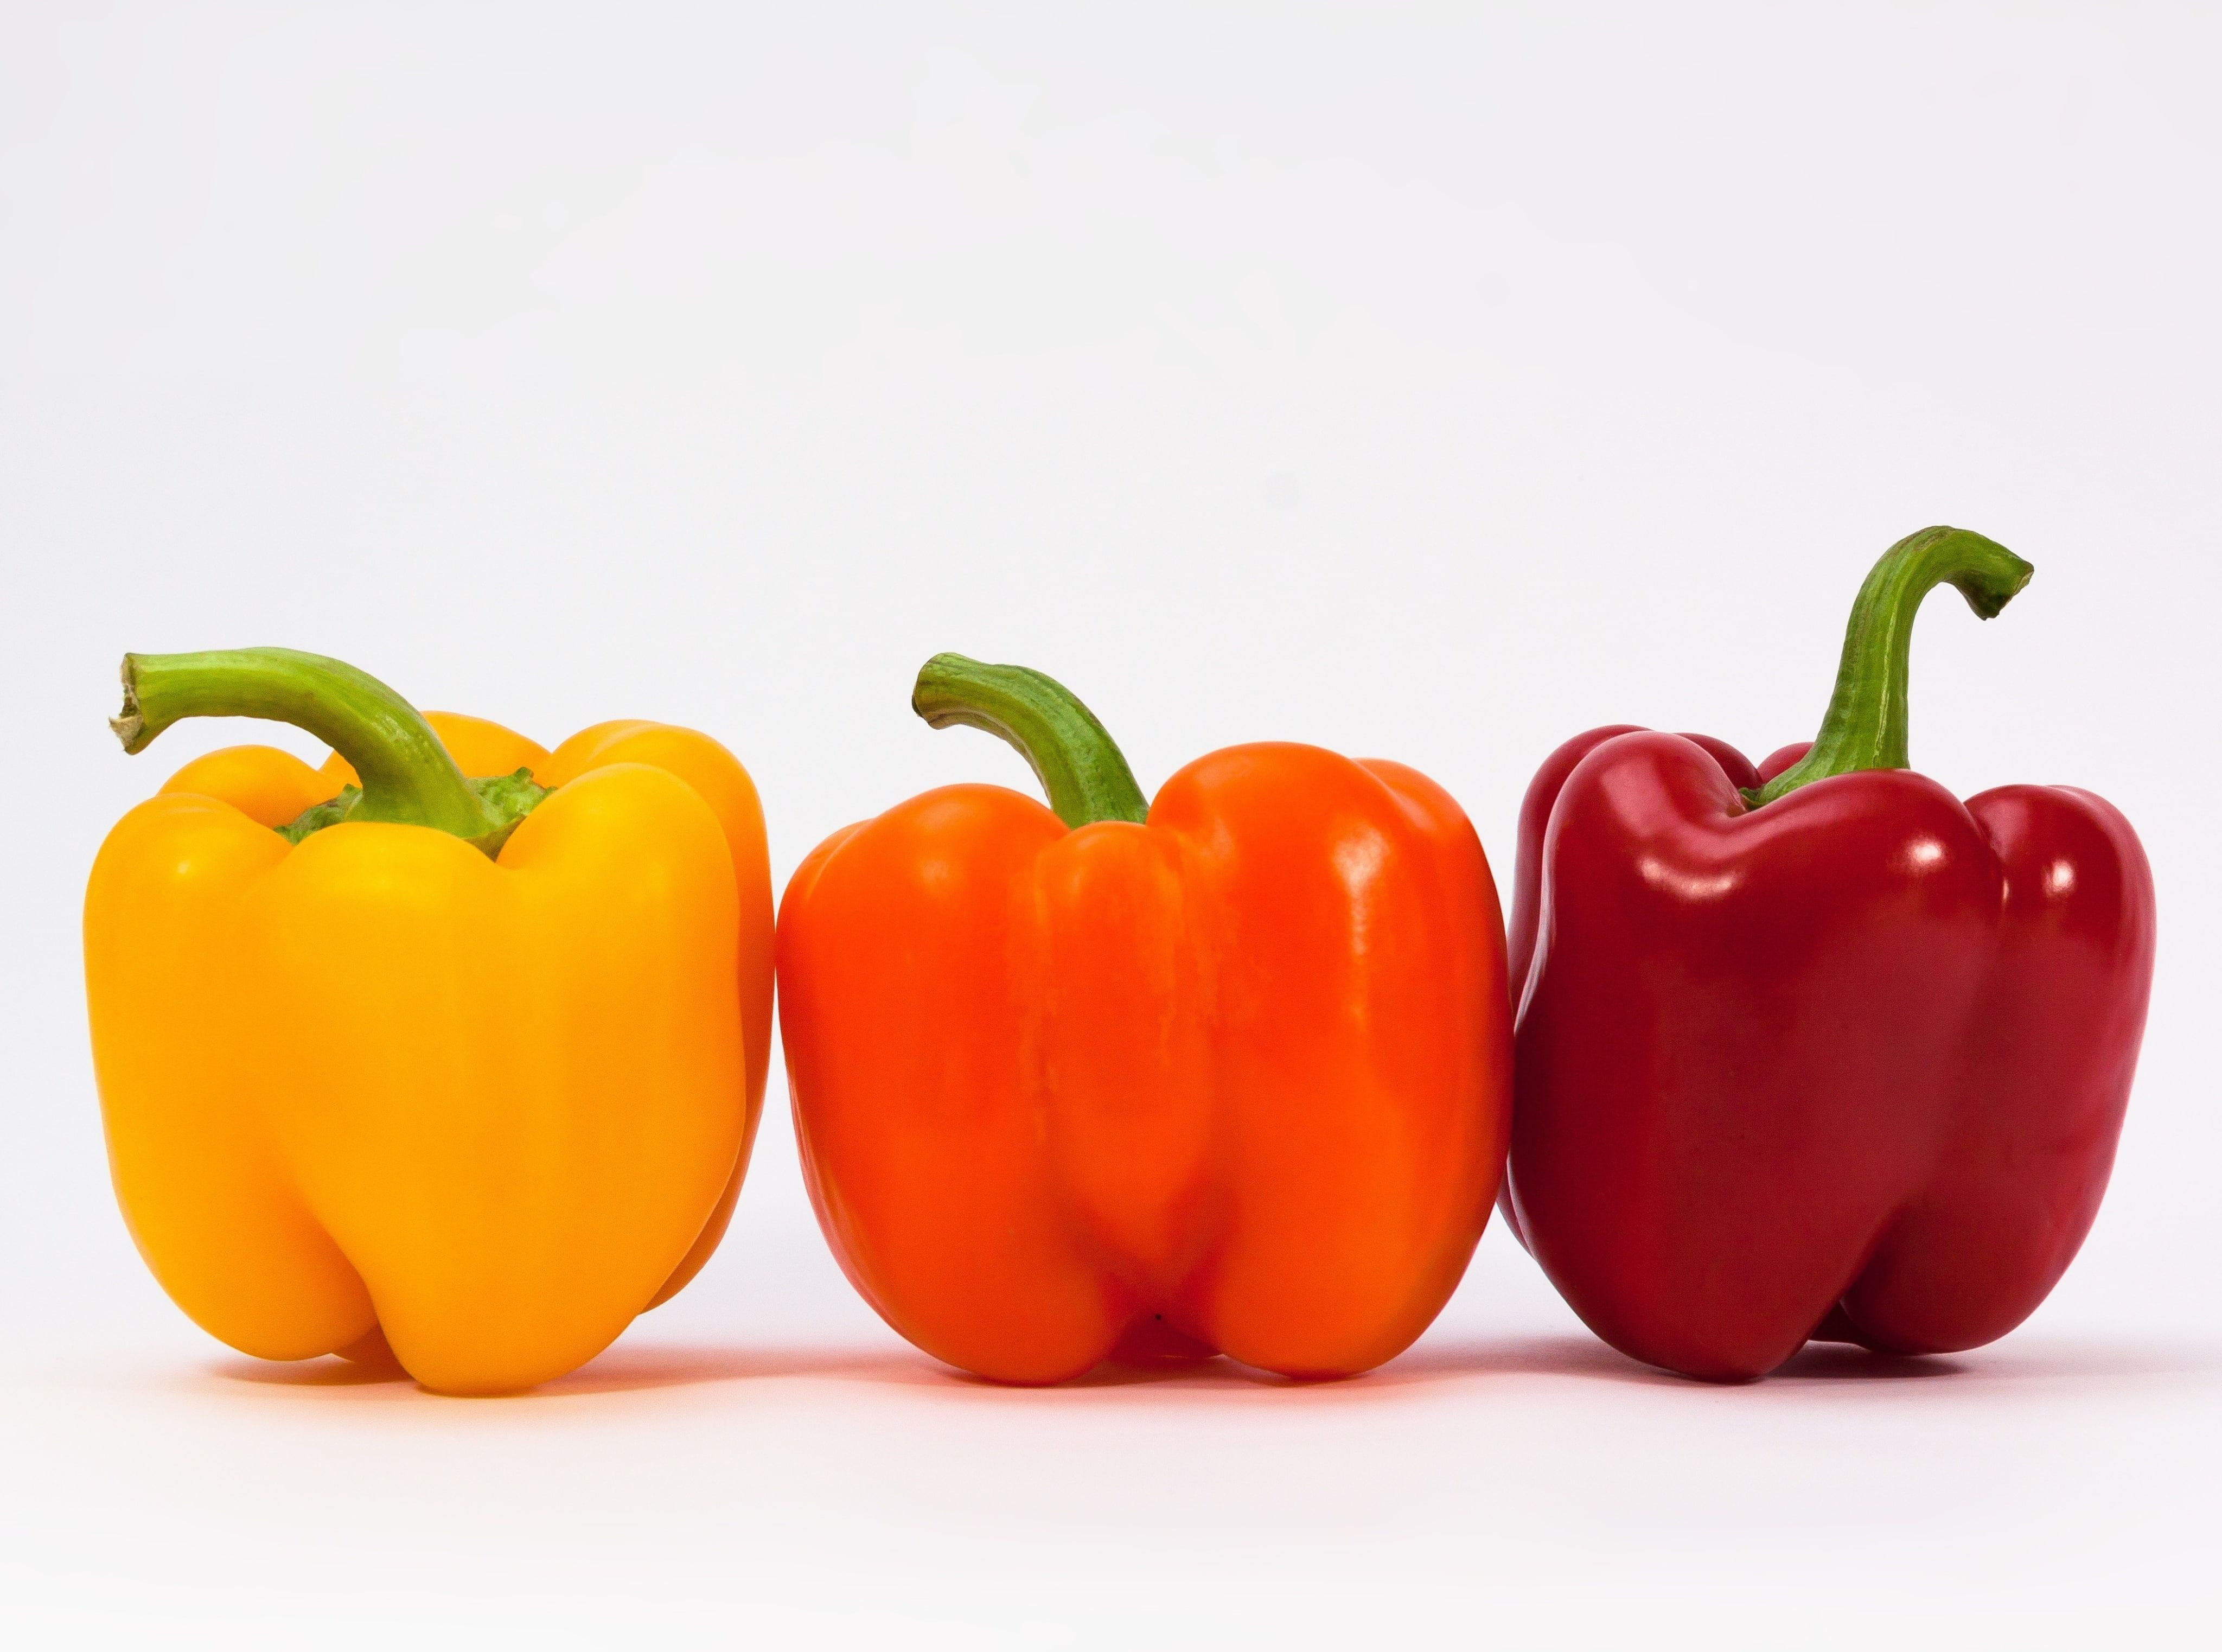 Sweet Peppers, yellow, orange, and red belt peppers Food and Drink #Orange #Yellow #Plant #delicious #Kitchen #Food #healthy #Vegetables #cook #paprika #sweetpeppers #biofood #biovegetables #ingredients #4K #wallpaper #hdwallpaper #desktop